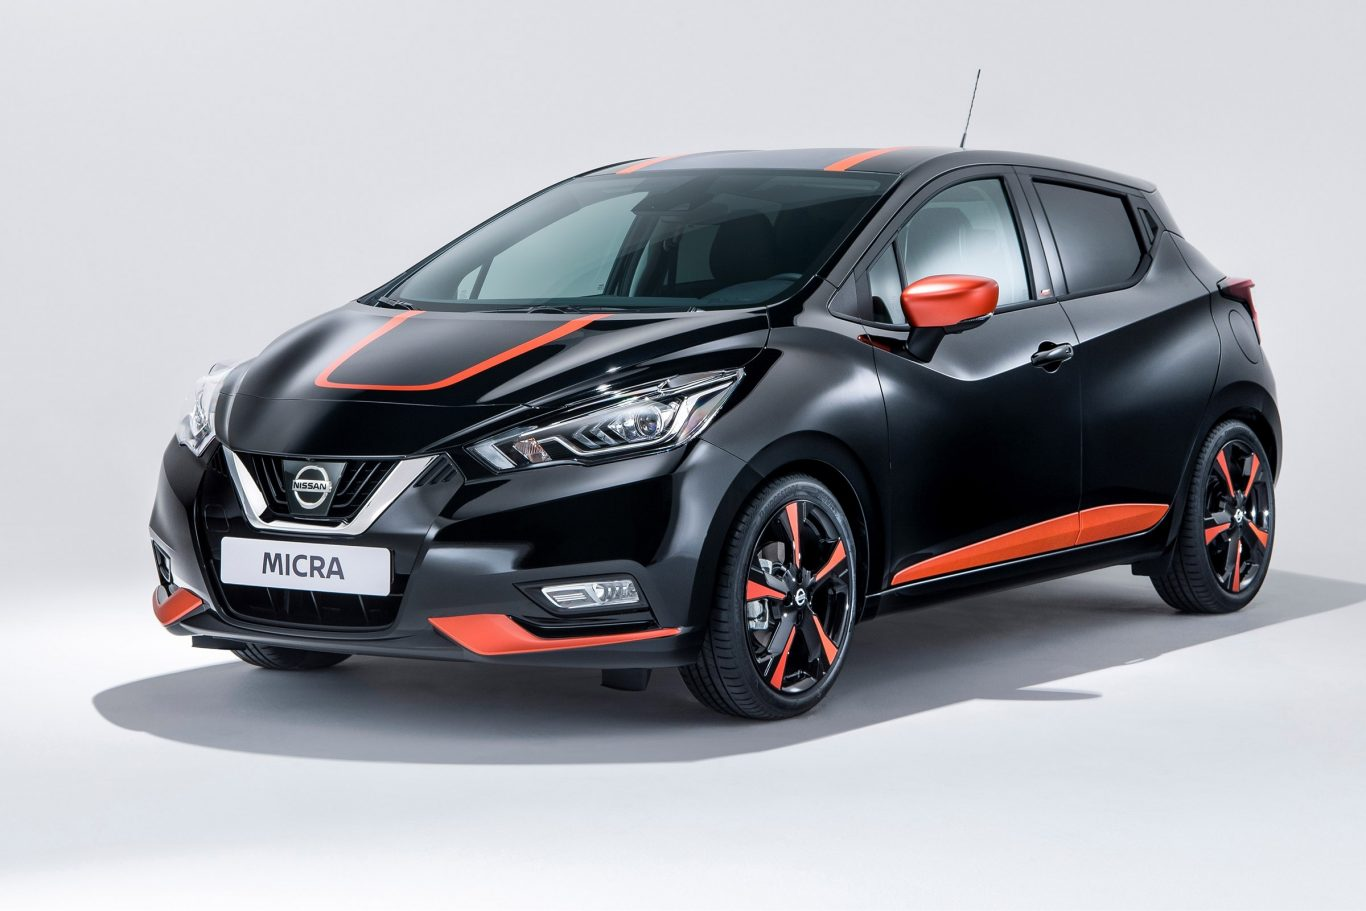 48 All New 2020 Nissan Micra Images